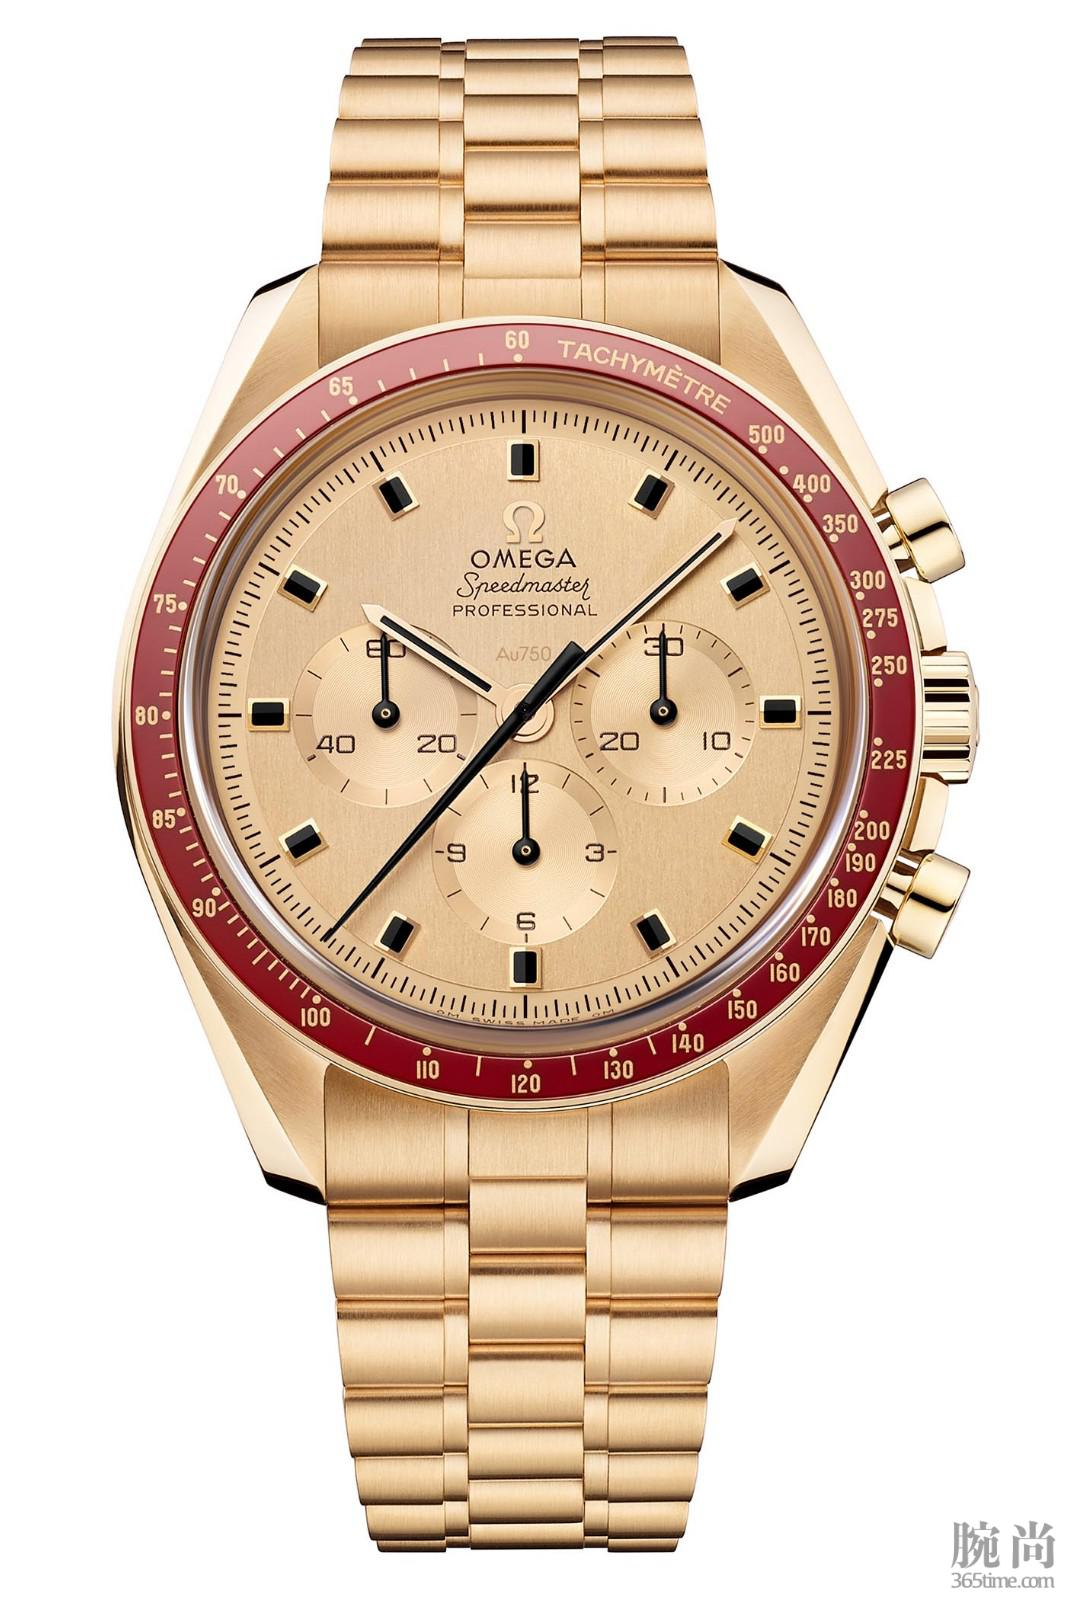 Omega-Speedmaster-Apollo-11-50th-Anniversary-Limited-Edition-310.60.42.50.99.001-1.jpg